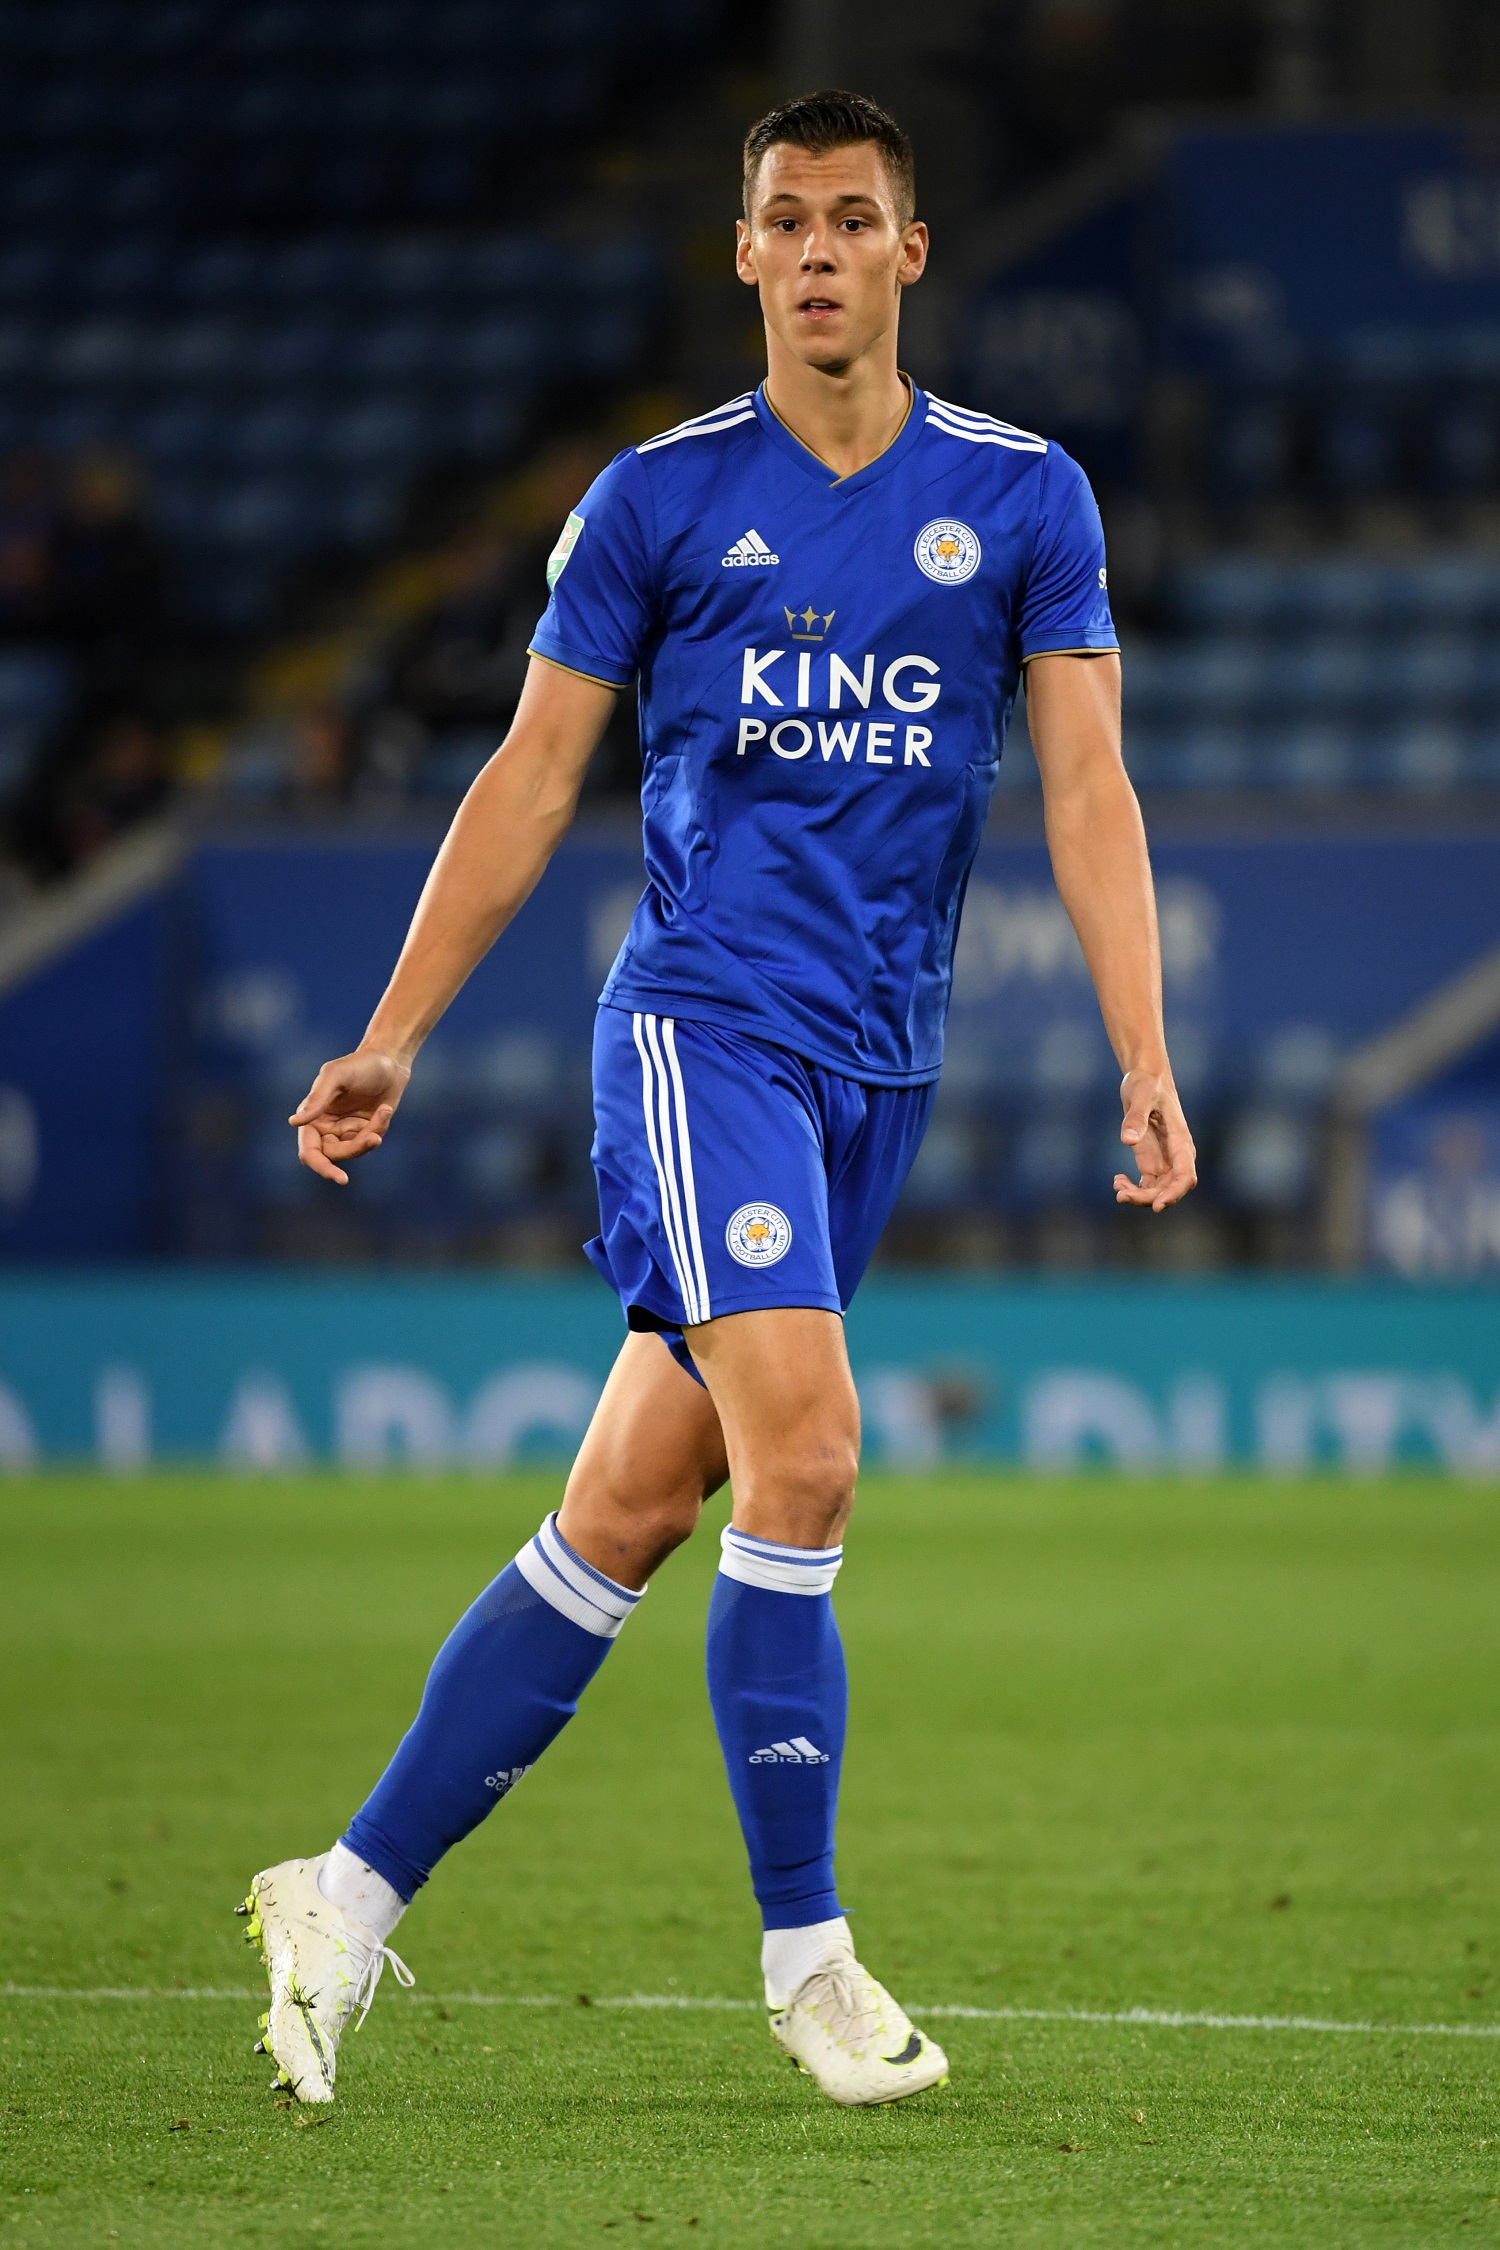 LEICESTER, ENGLAND - AUGUST 28:  Filip Benkovic of Leicester City looks on during the Carabao Cup Second Round match between Leicester City and Fleetwood Town at The King Power Stadium on August 28, 2018 in Leicester, England.  (Photo by Ross Kinnaird/Getty Images)